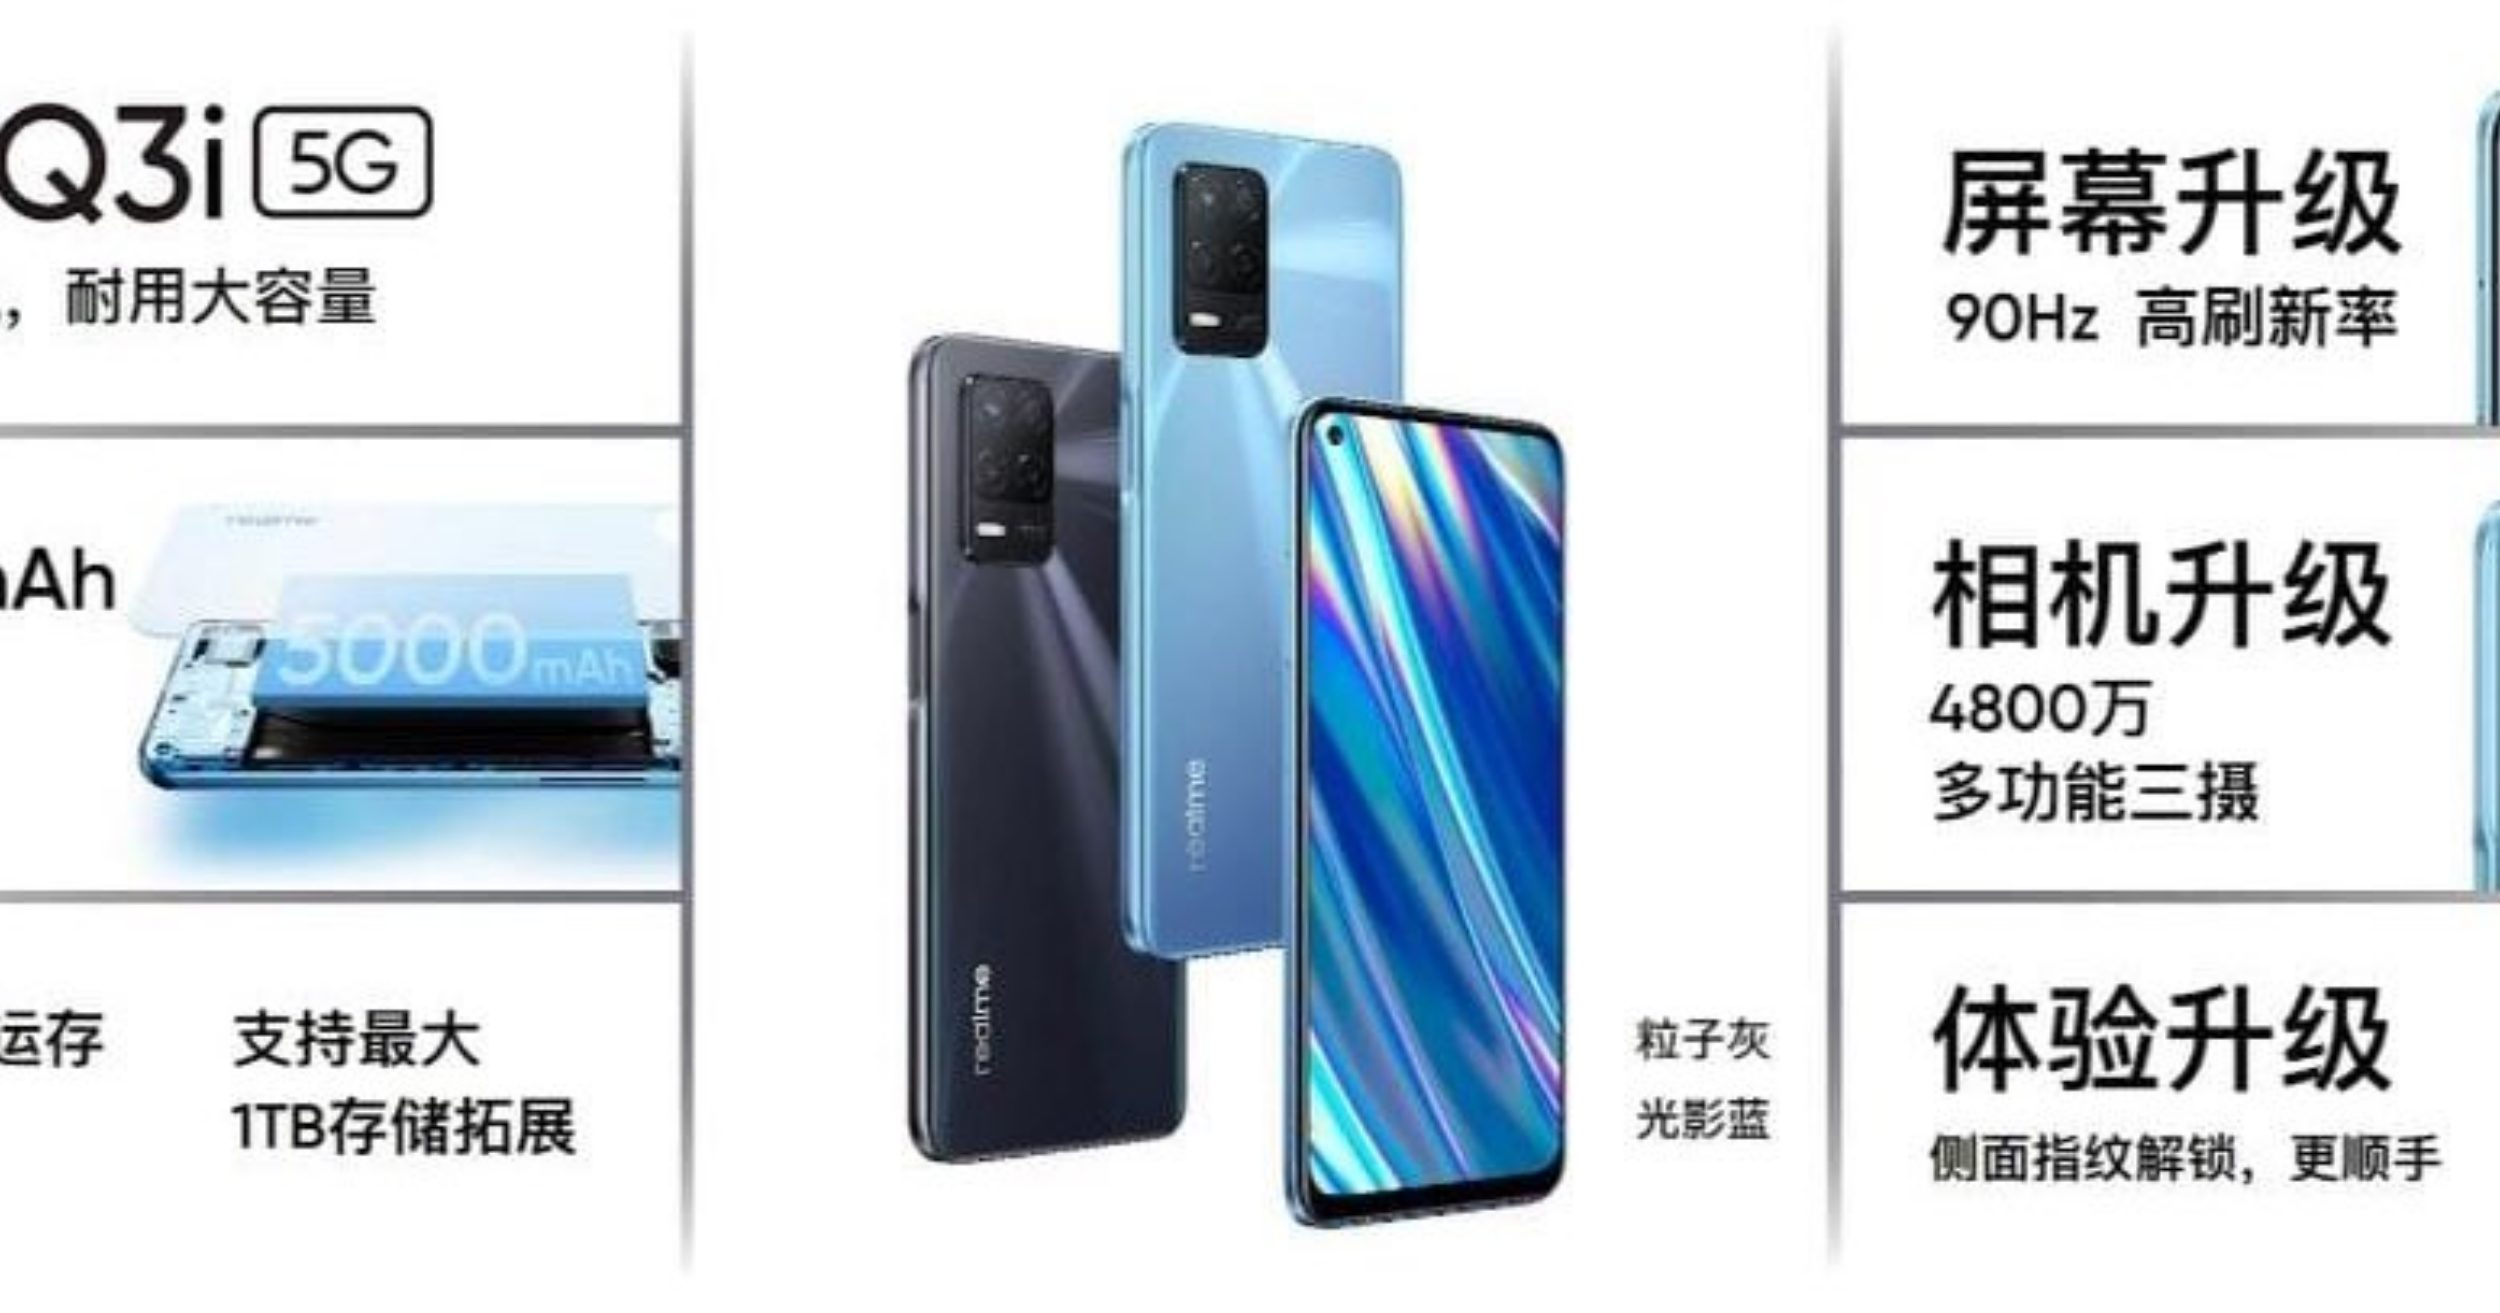 realme-q3i-5g-official-price-specs-release-date-availability-philippines